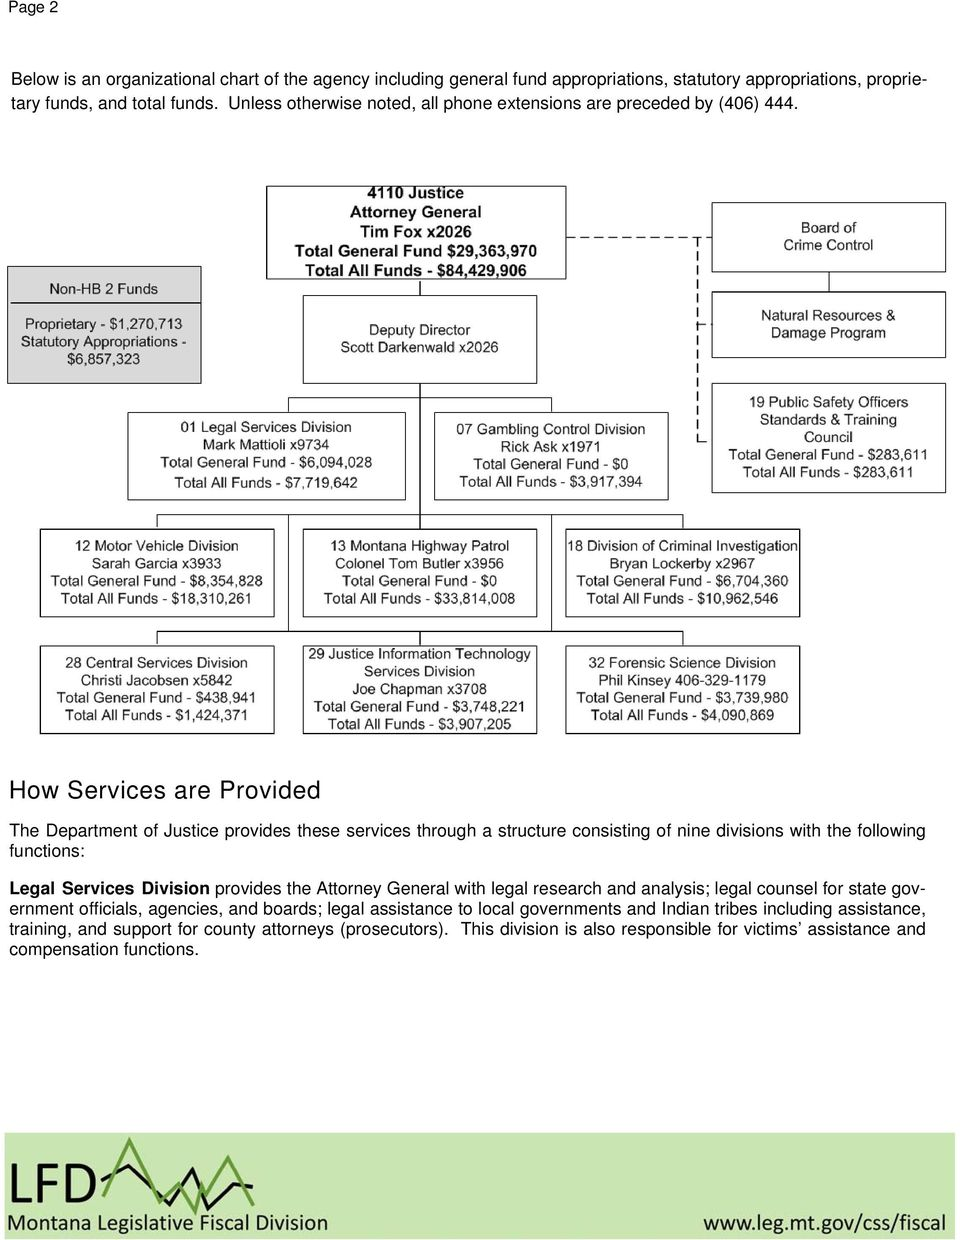 How Services are Provided The Department of Justice provides these services through a structure consisting of nine divisions with the following functions: Legal Services Division provides